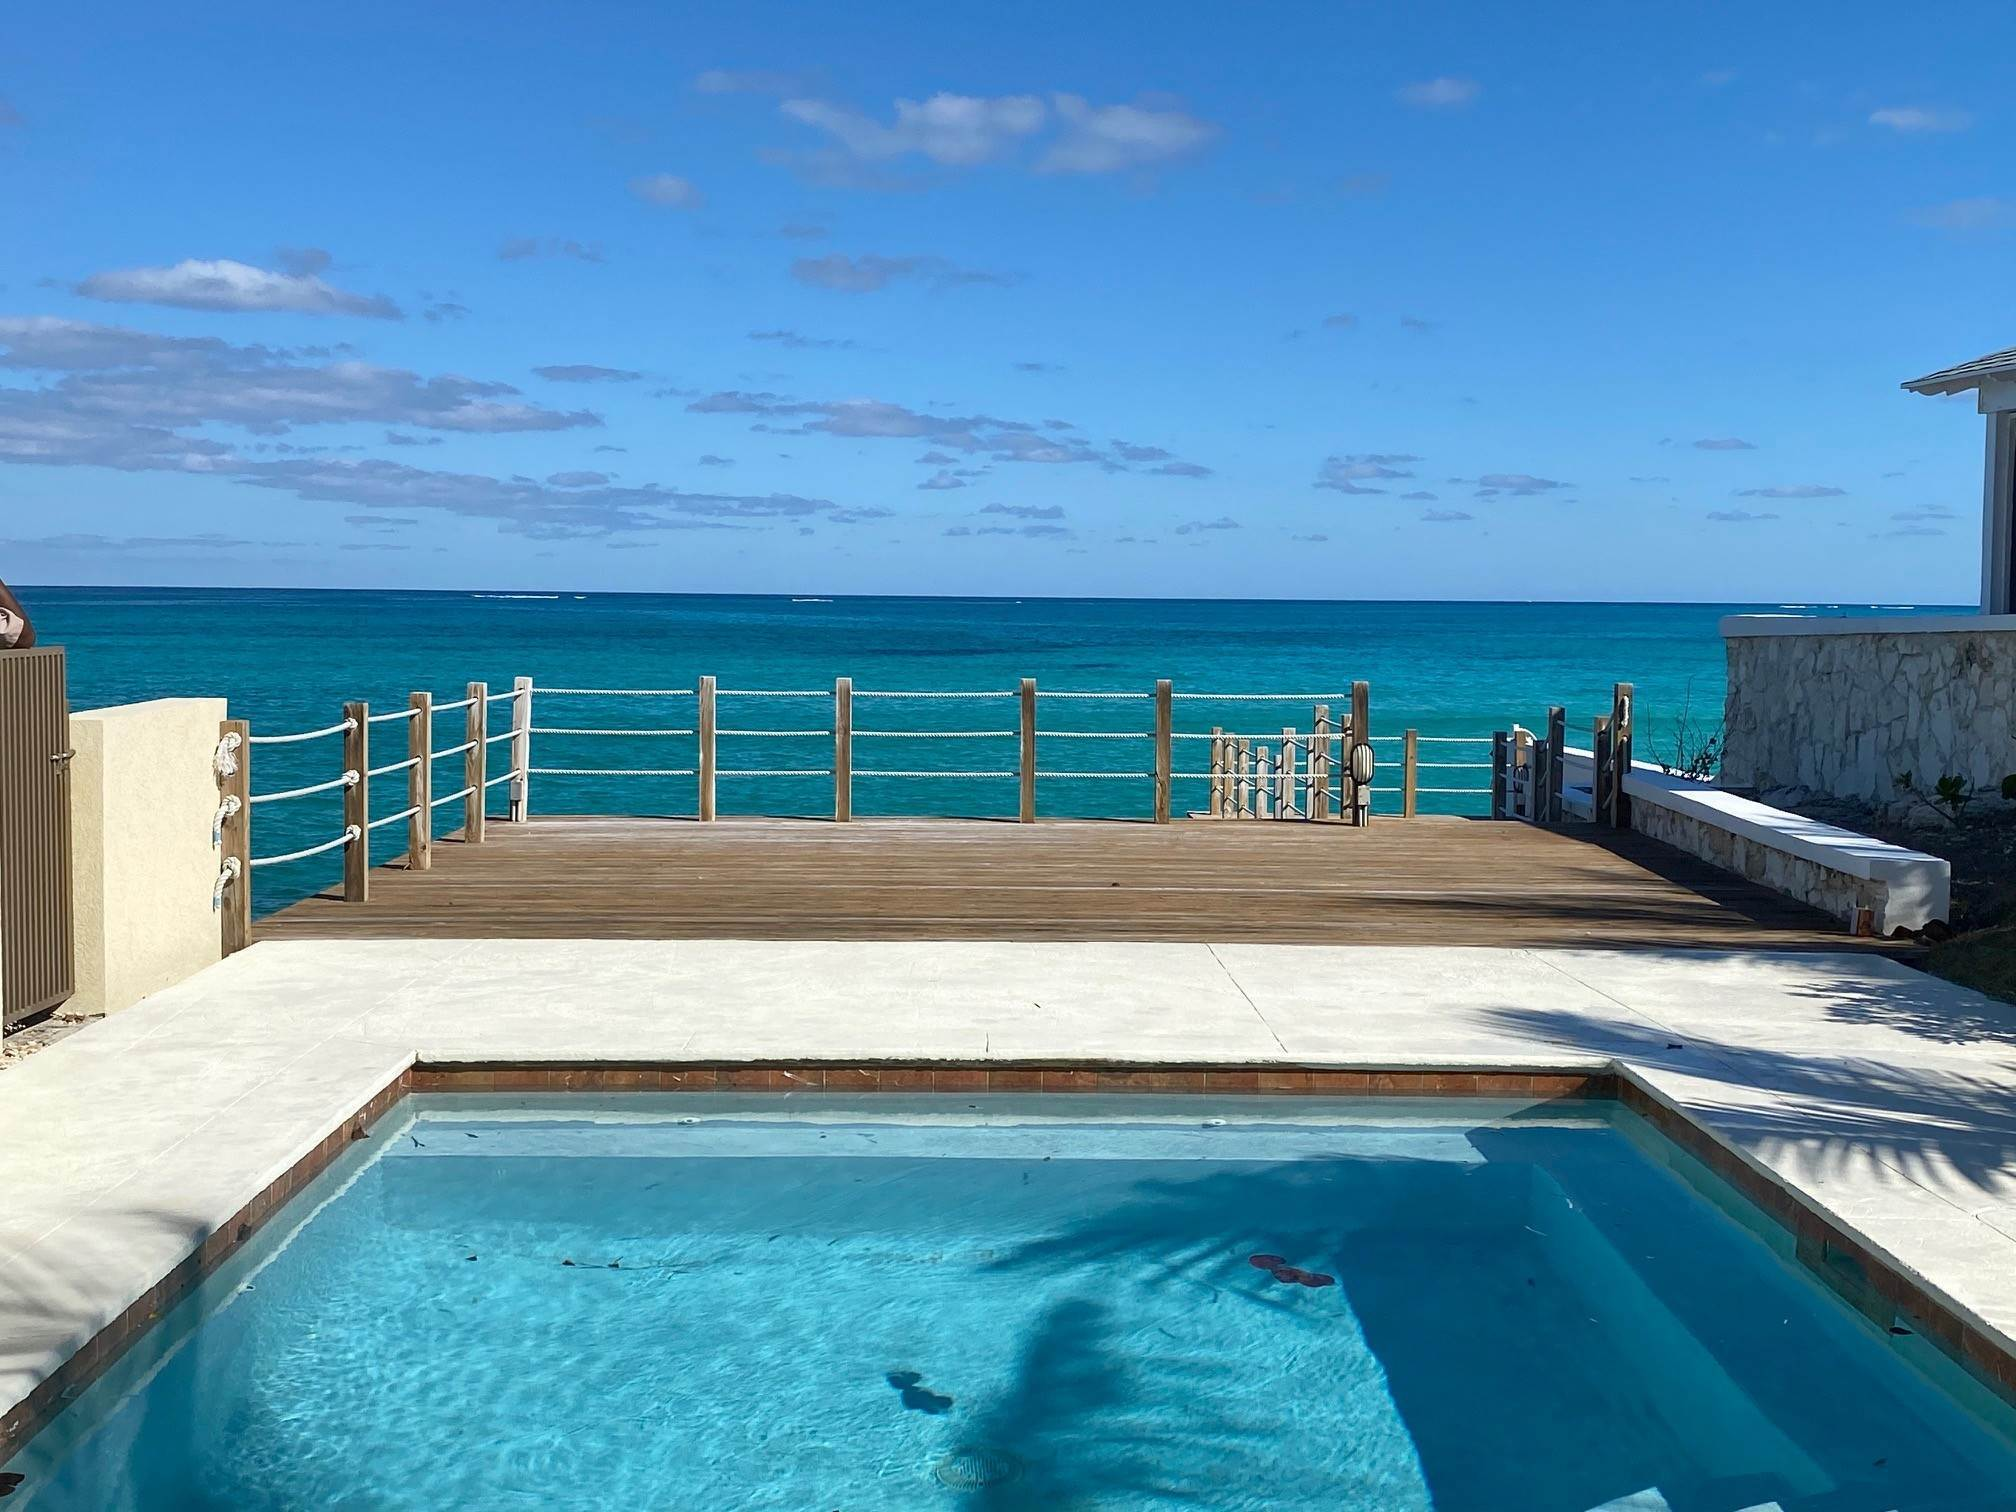 Co-op / Condo for Sale at Finely Crafted Waterfront Residence in the heart of Cable Beach - MLS 40093 Cable Beach, Nassau And Paradise Island, Bahamas